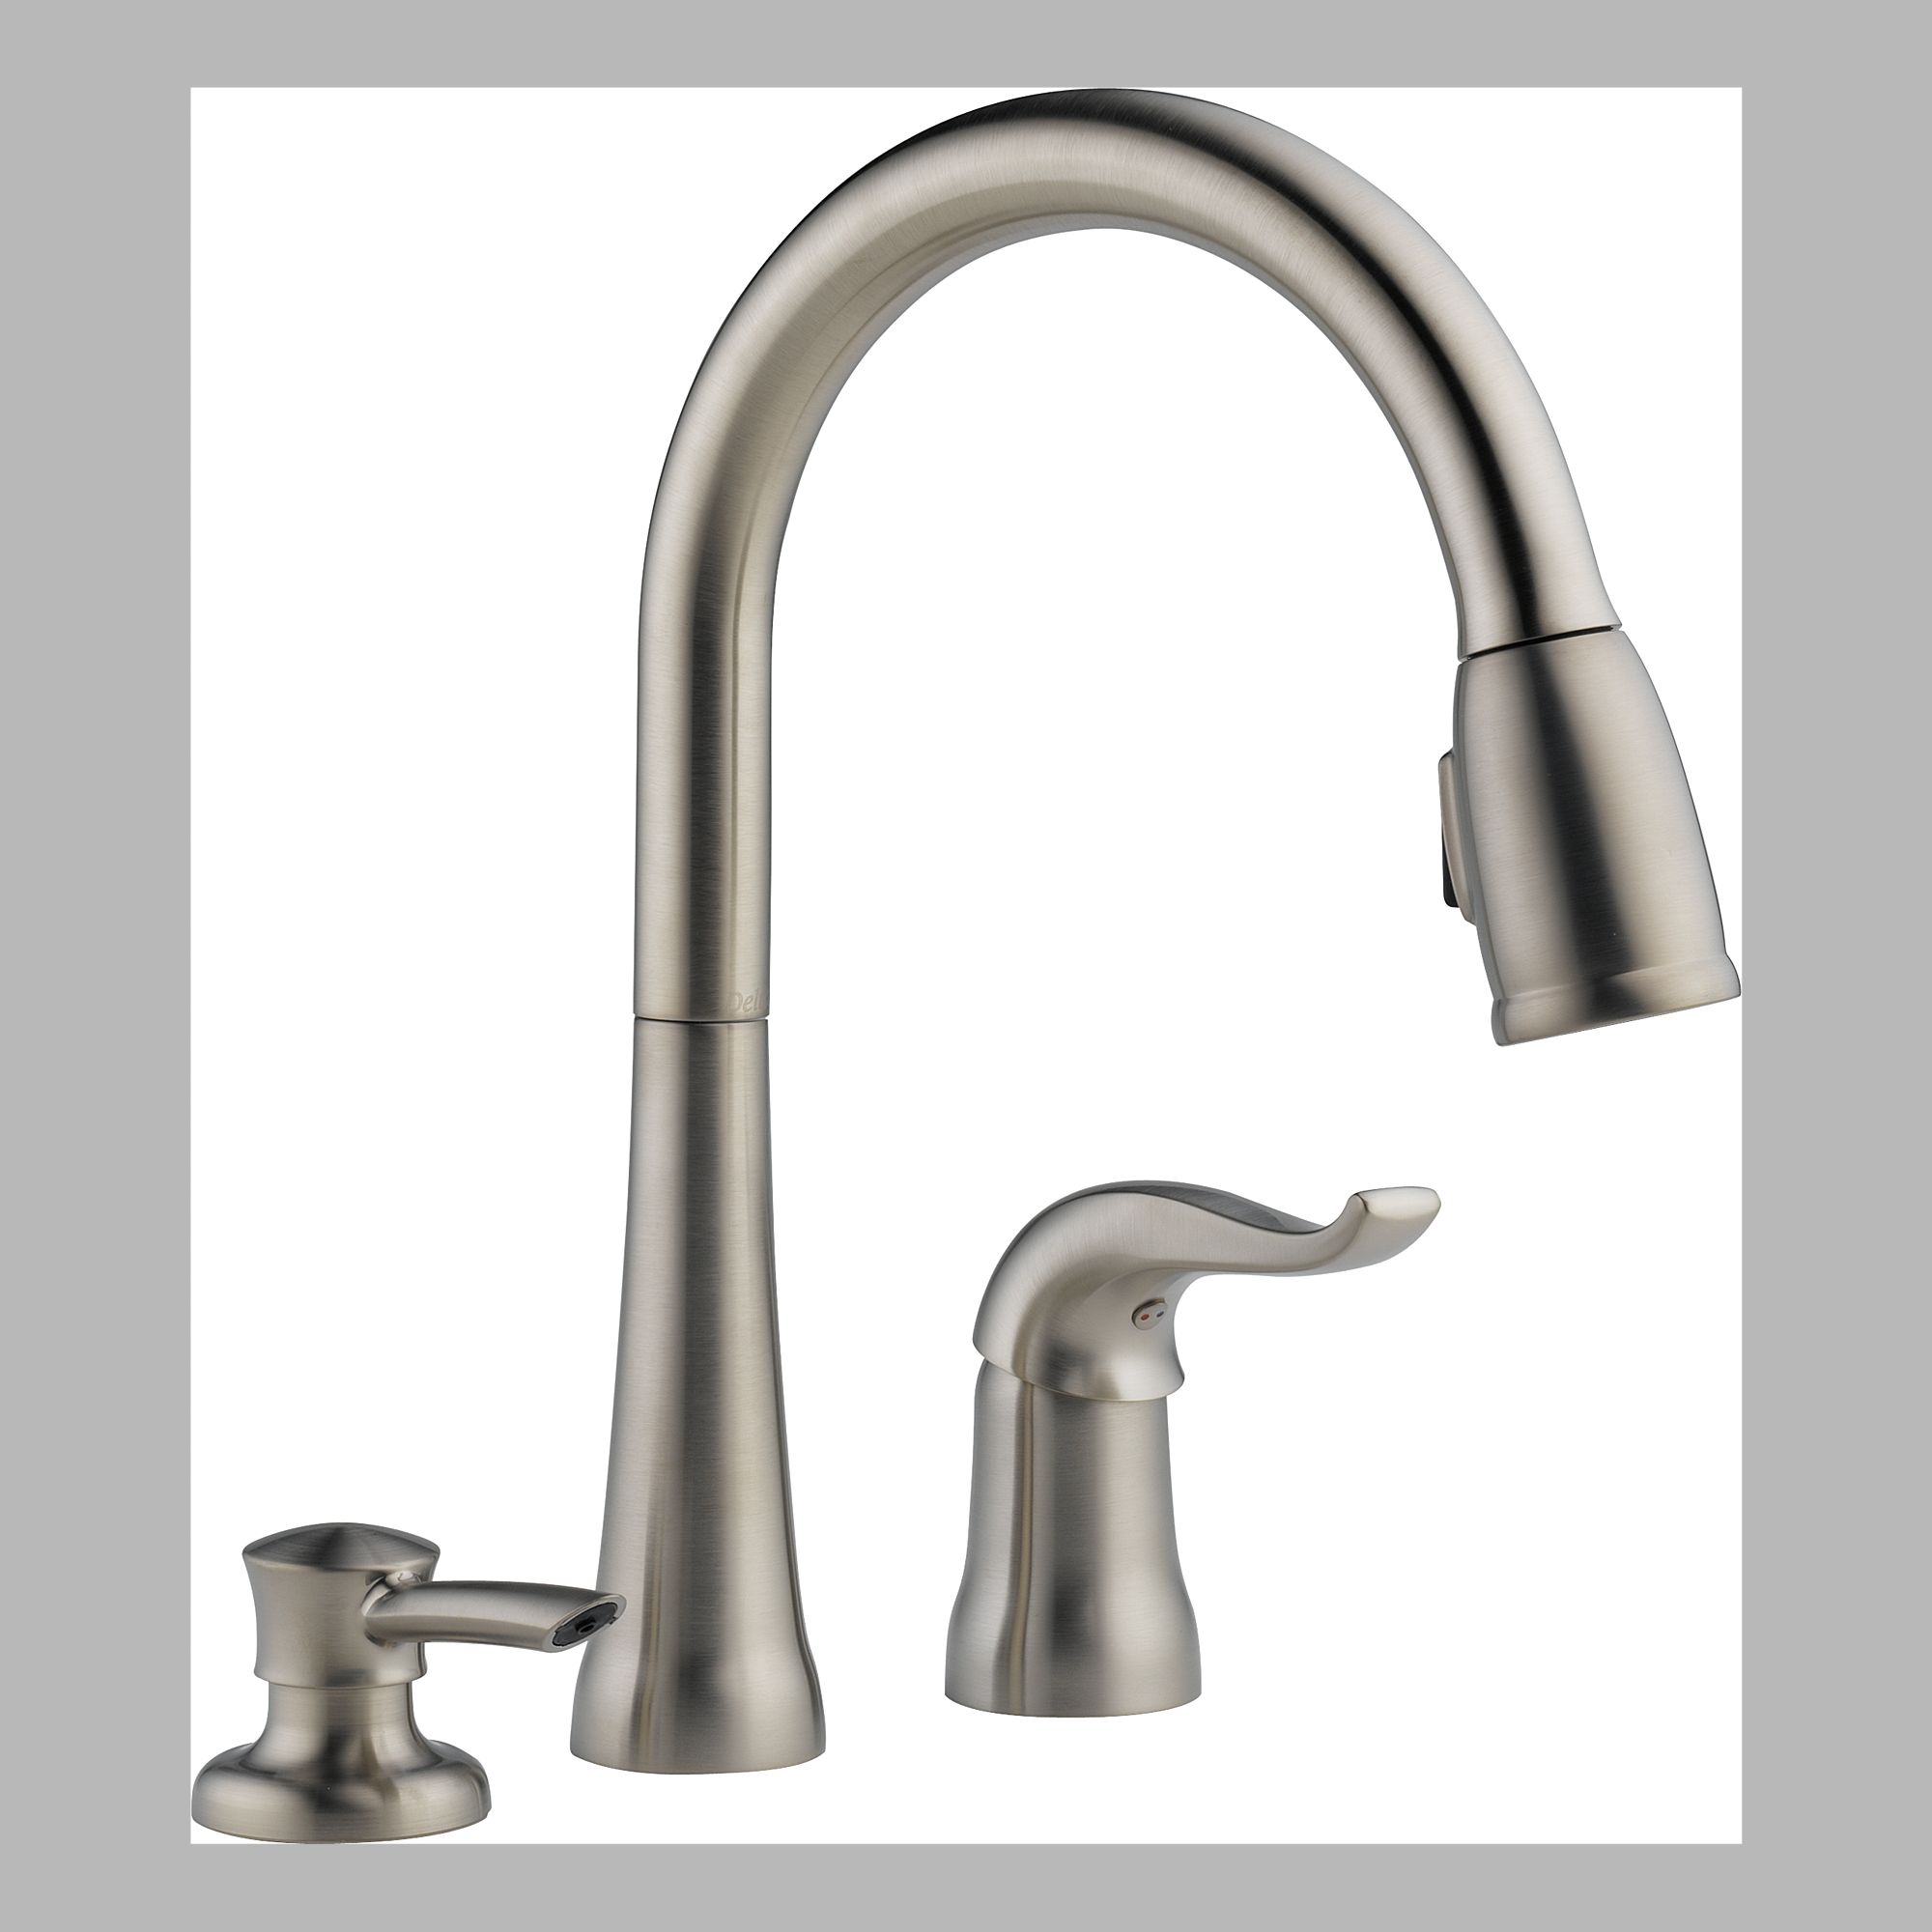 Delta 16970-SSSD-DST Single Handle Pull Down Kitchen Faucet with Soap Dispenser